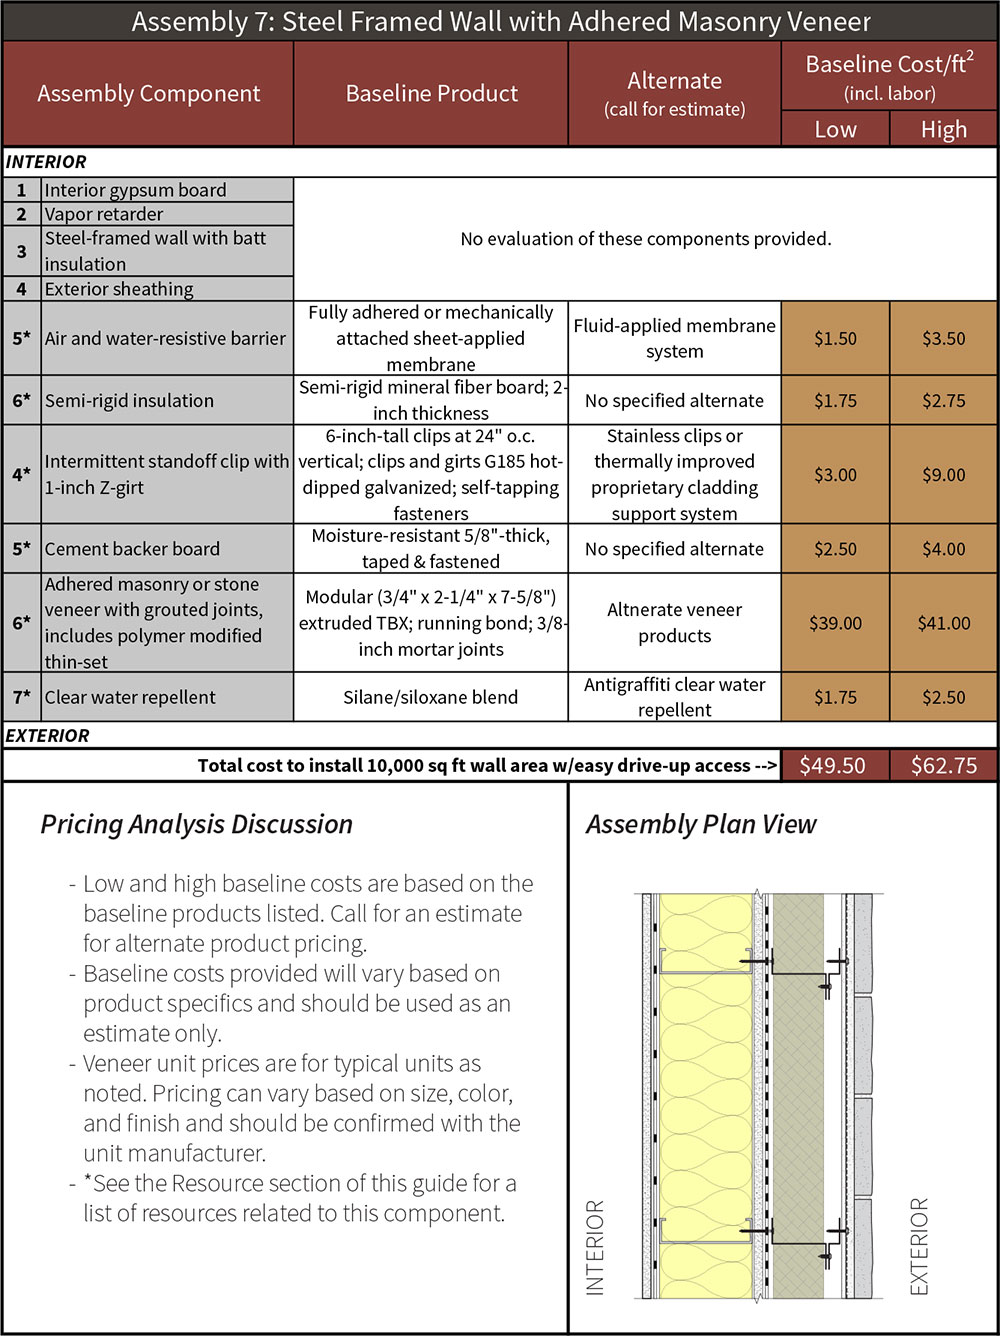 Table 7-4 Assembly 7 steel-framed wall with adhered masonry veneer pricing analysis.